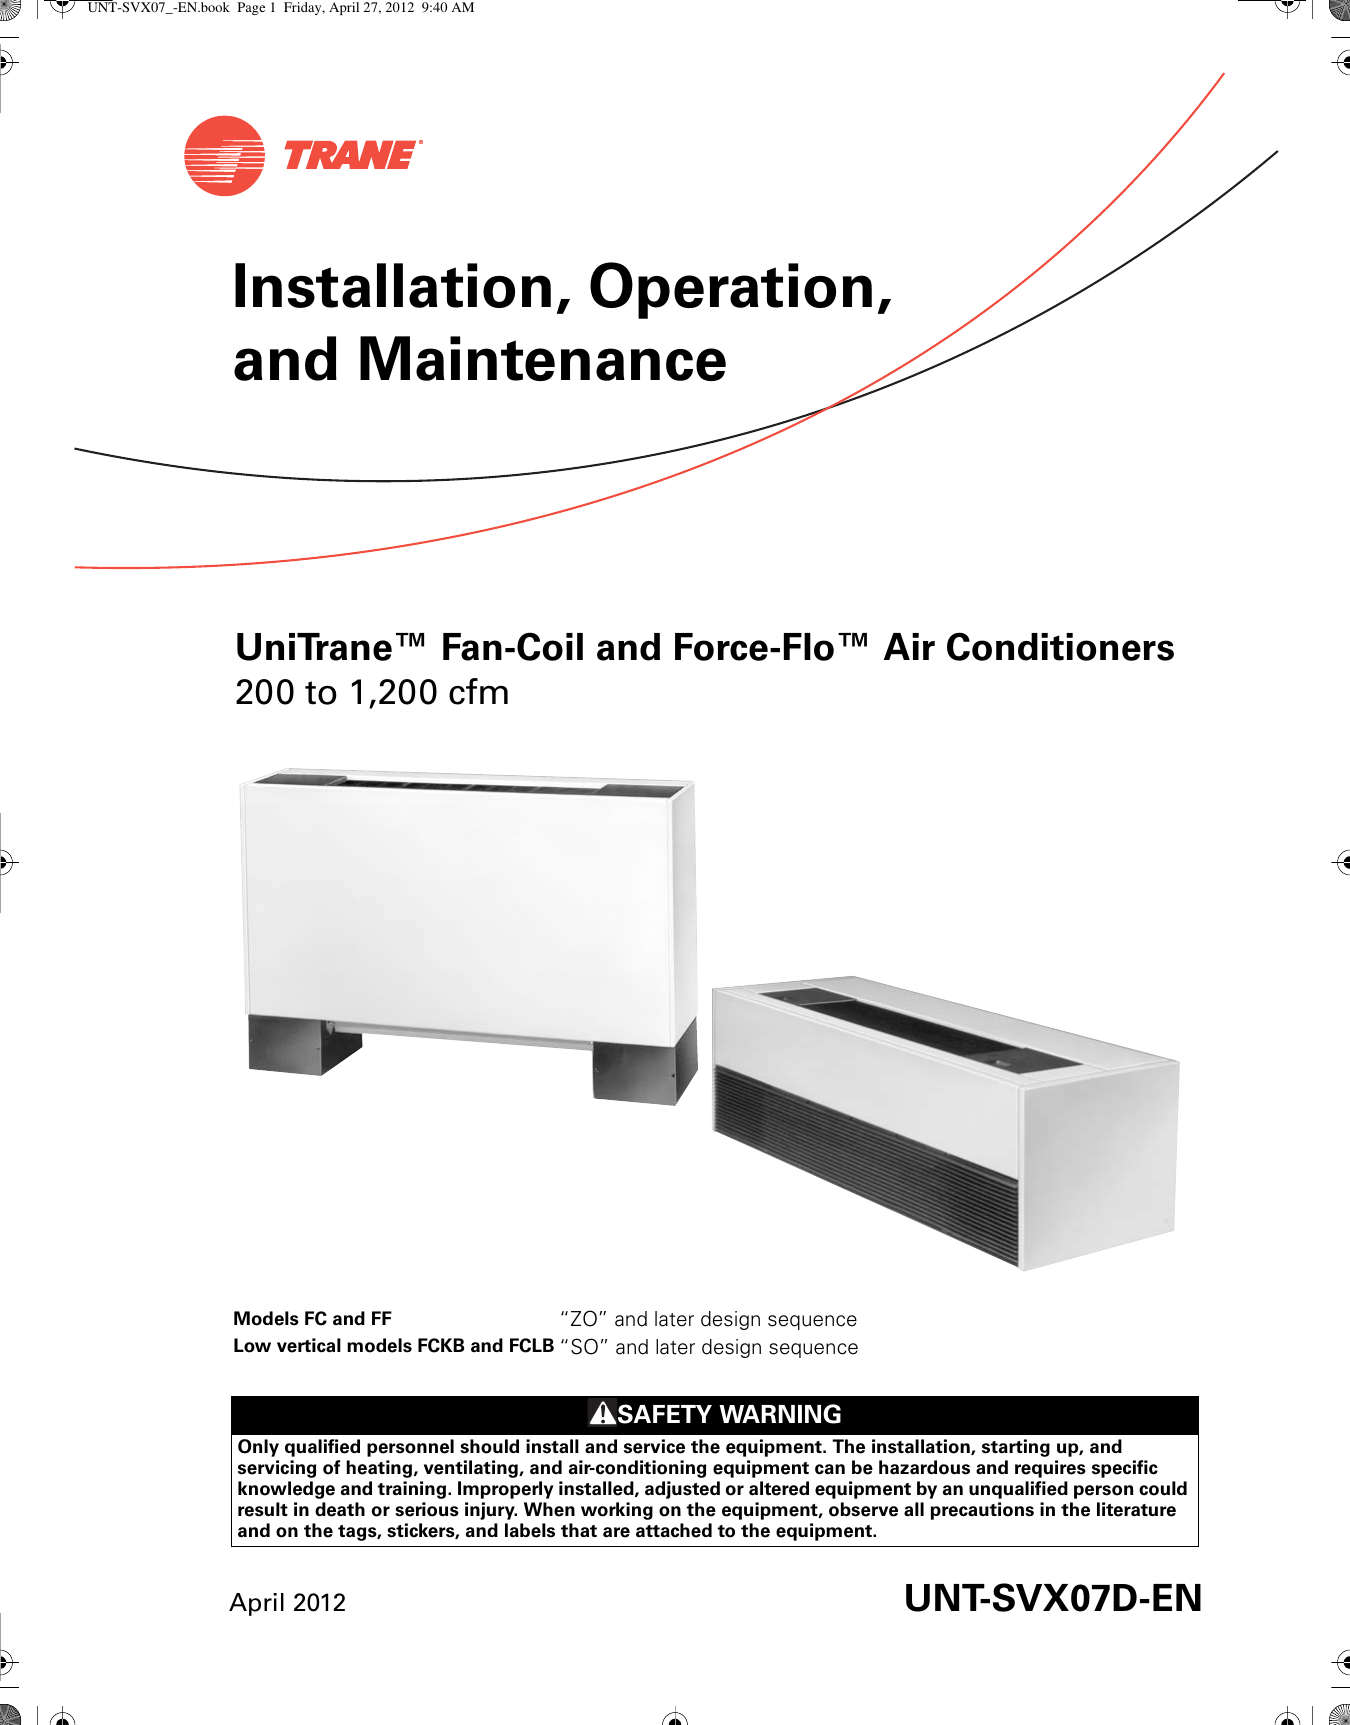 Trane Uni Fan Coil And Force Flo Installation Maintenance Manual UNT SVX07D  EN (27 Apr 2012)UserManual.wiki